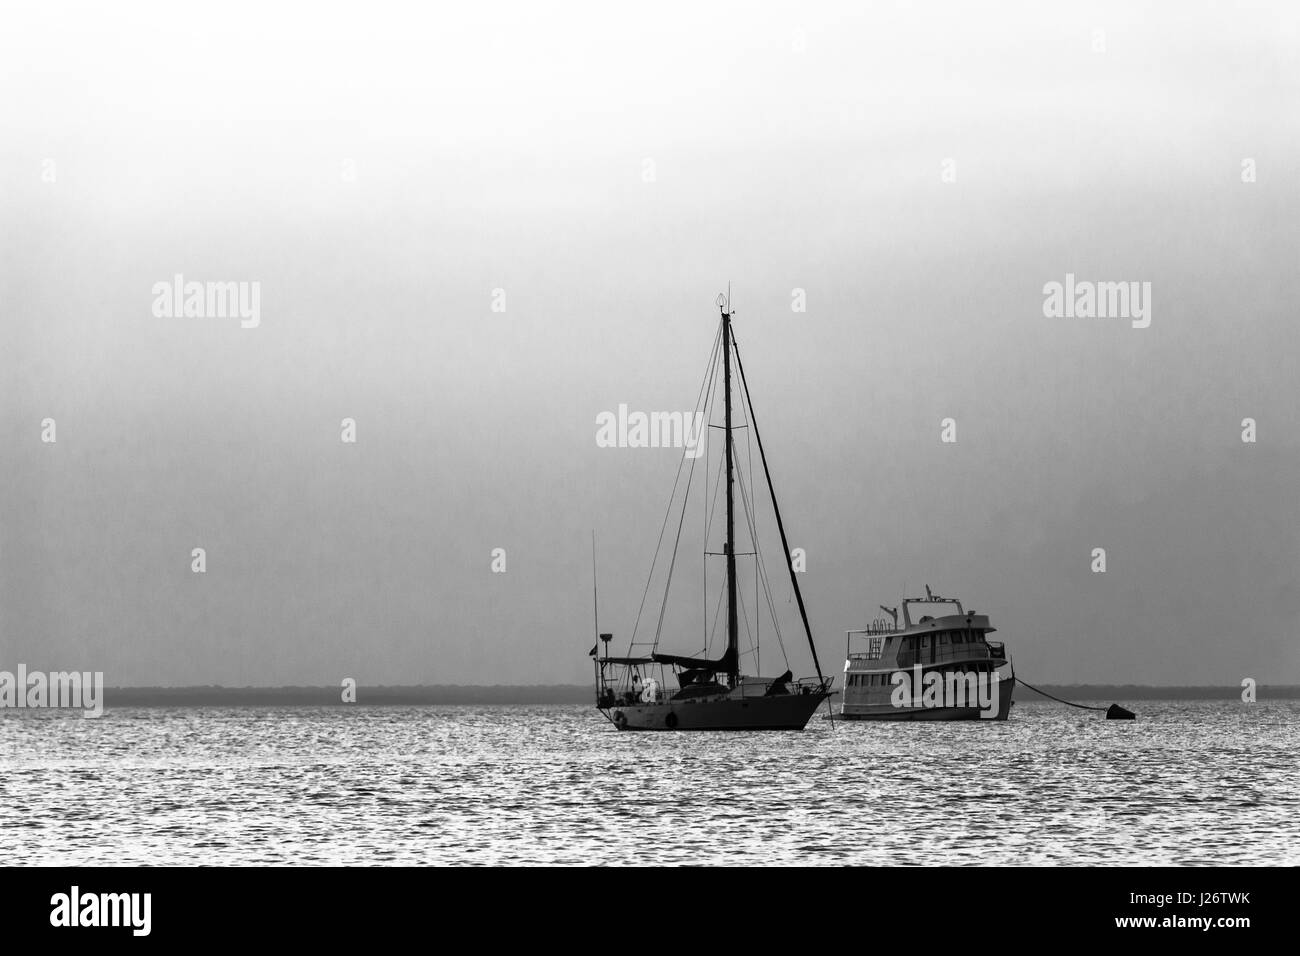 Sailboat and Passenger boat anchored in the Amazon river, Brazil. - Stock Image